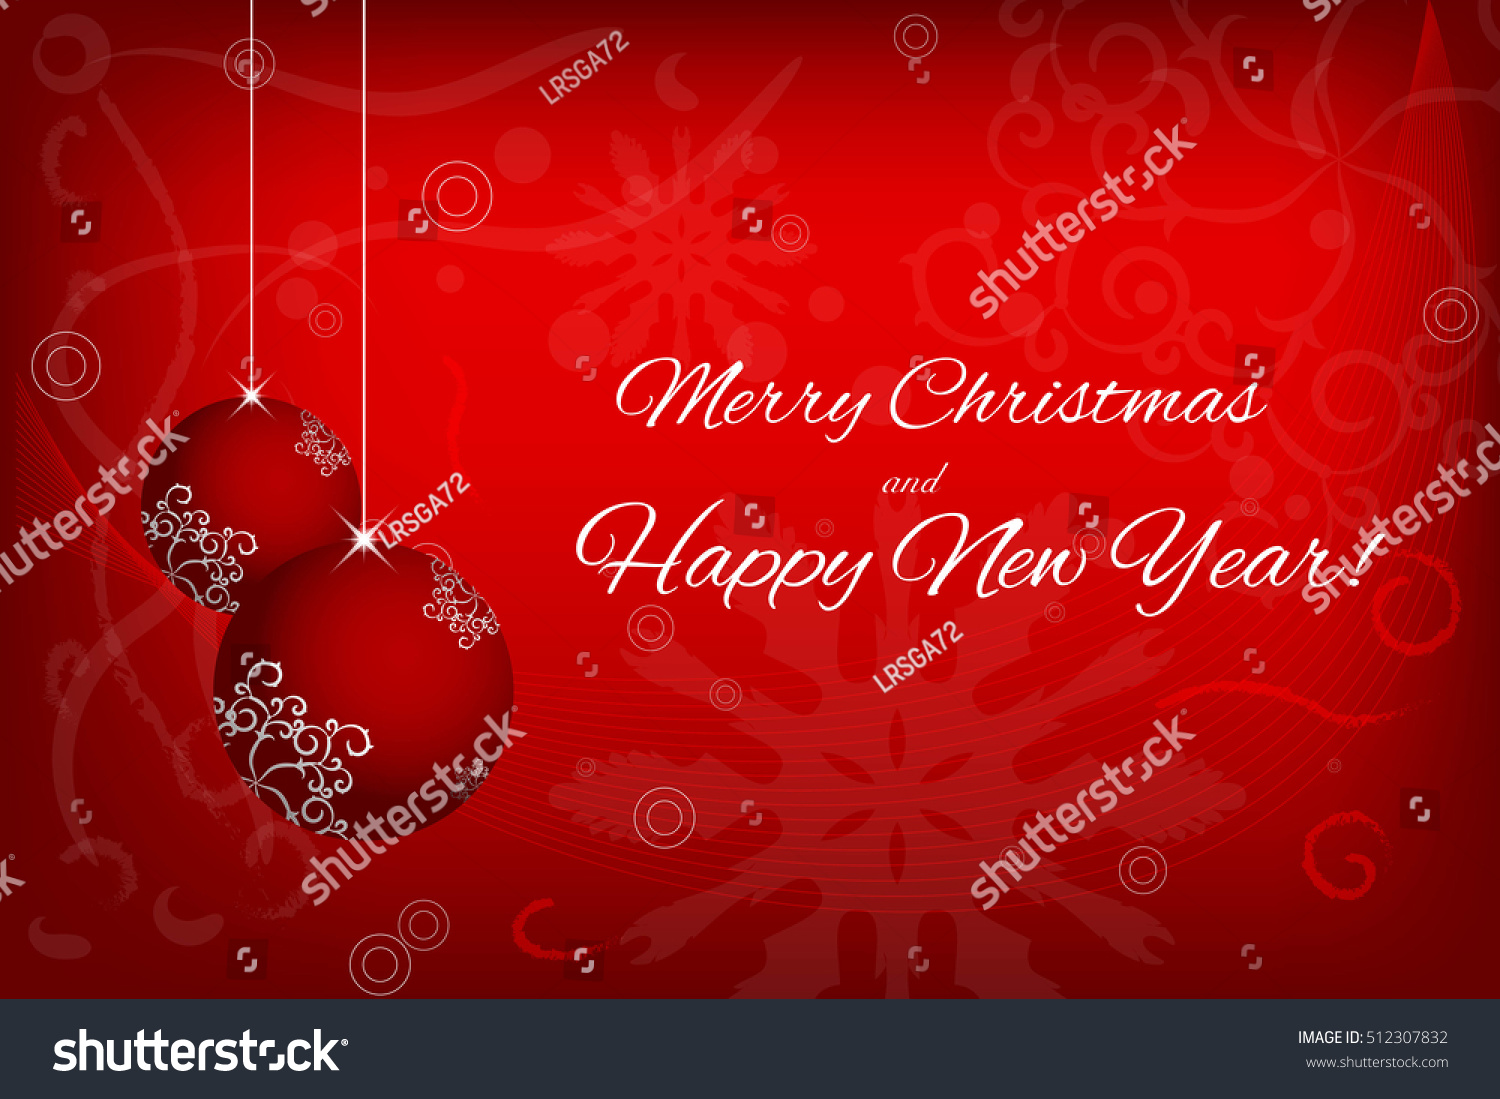 merry christmas and happy new year invitation card banner design element vector illustration